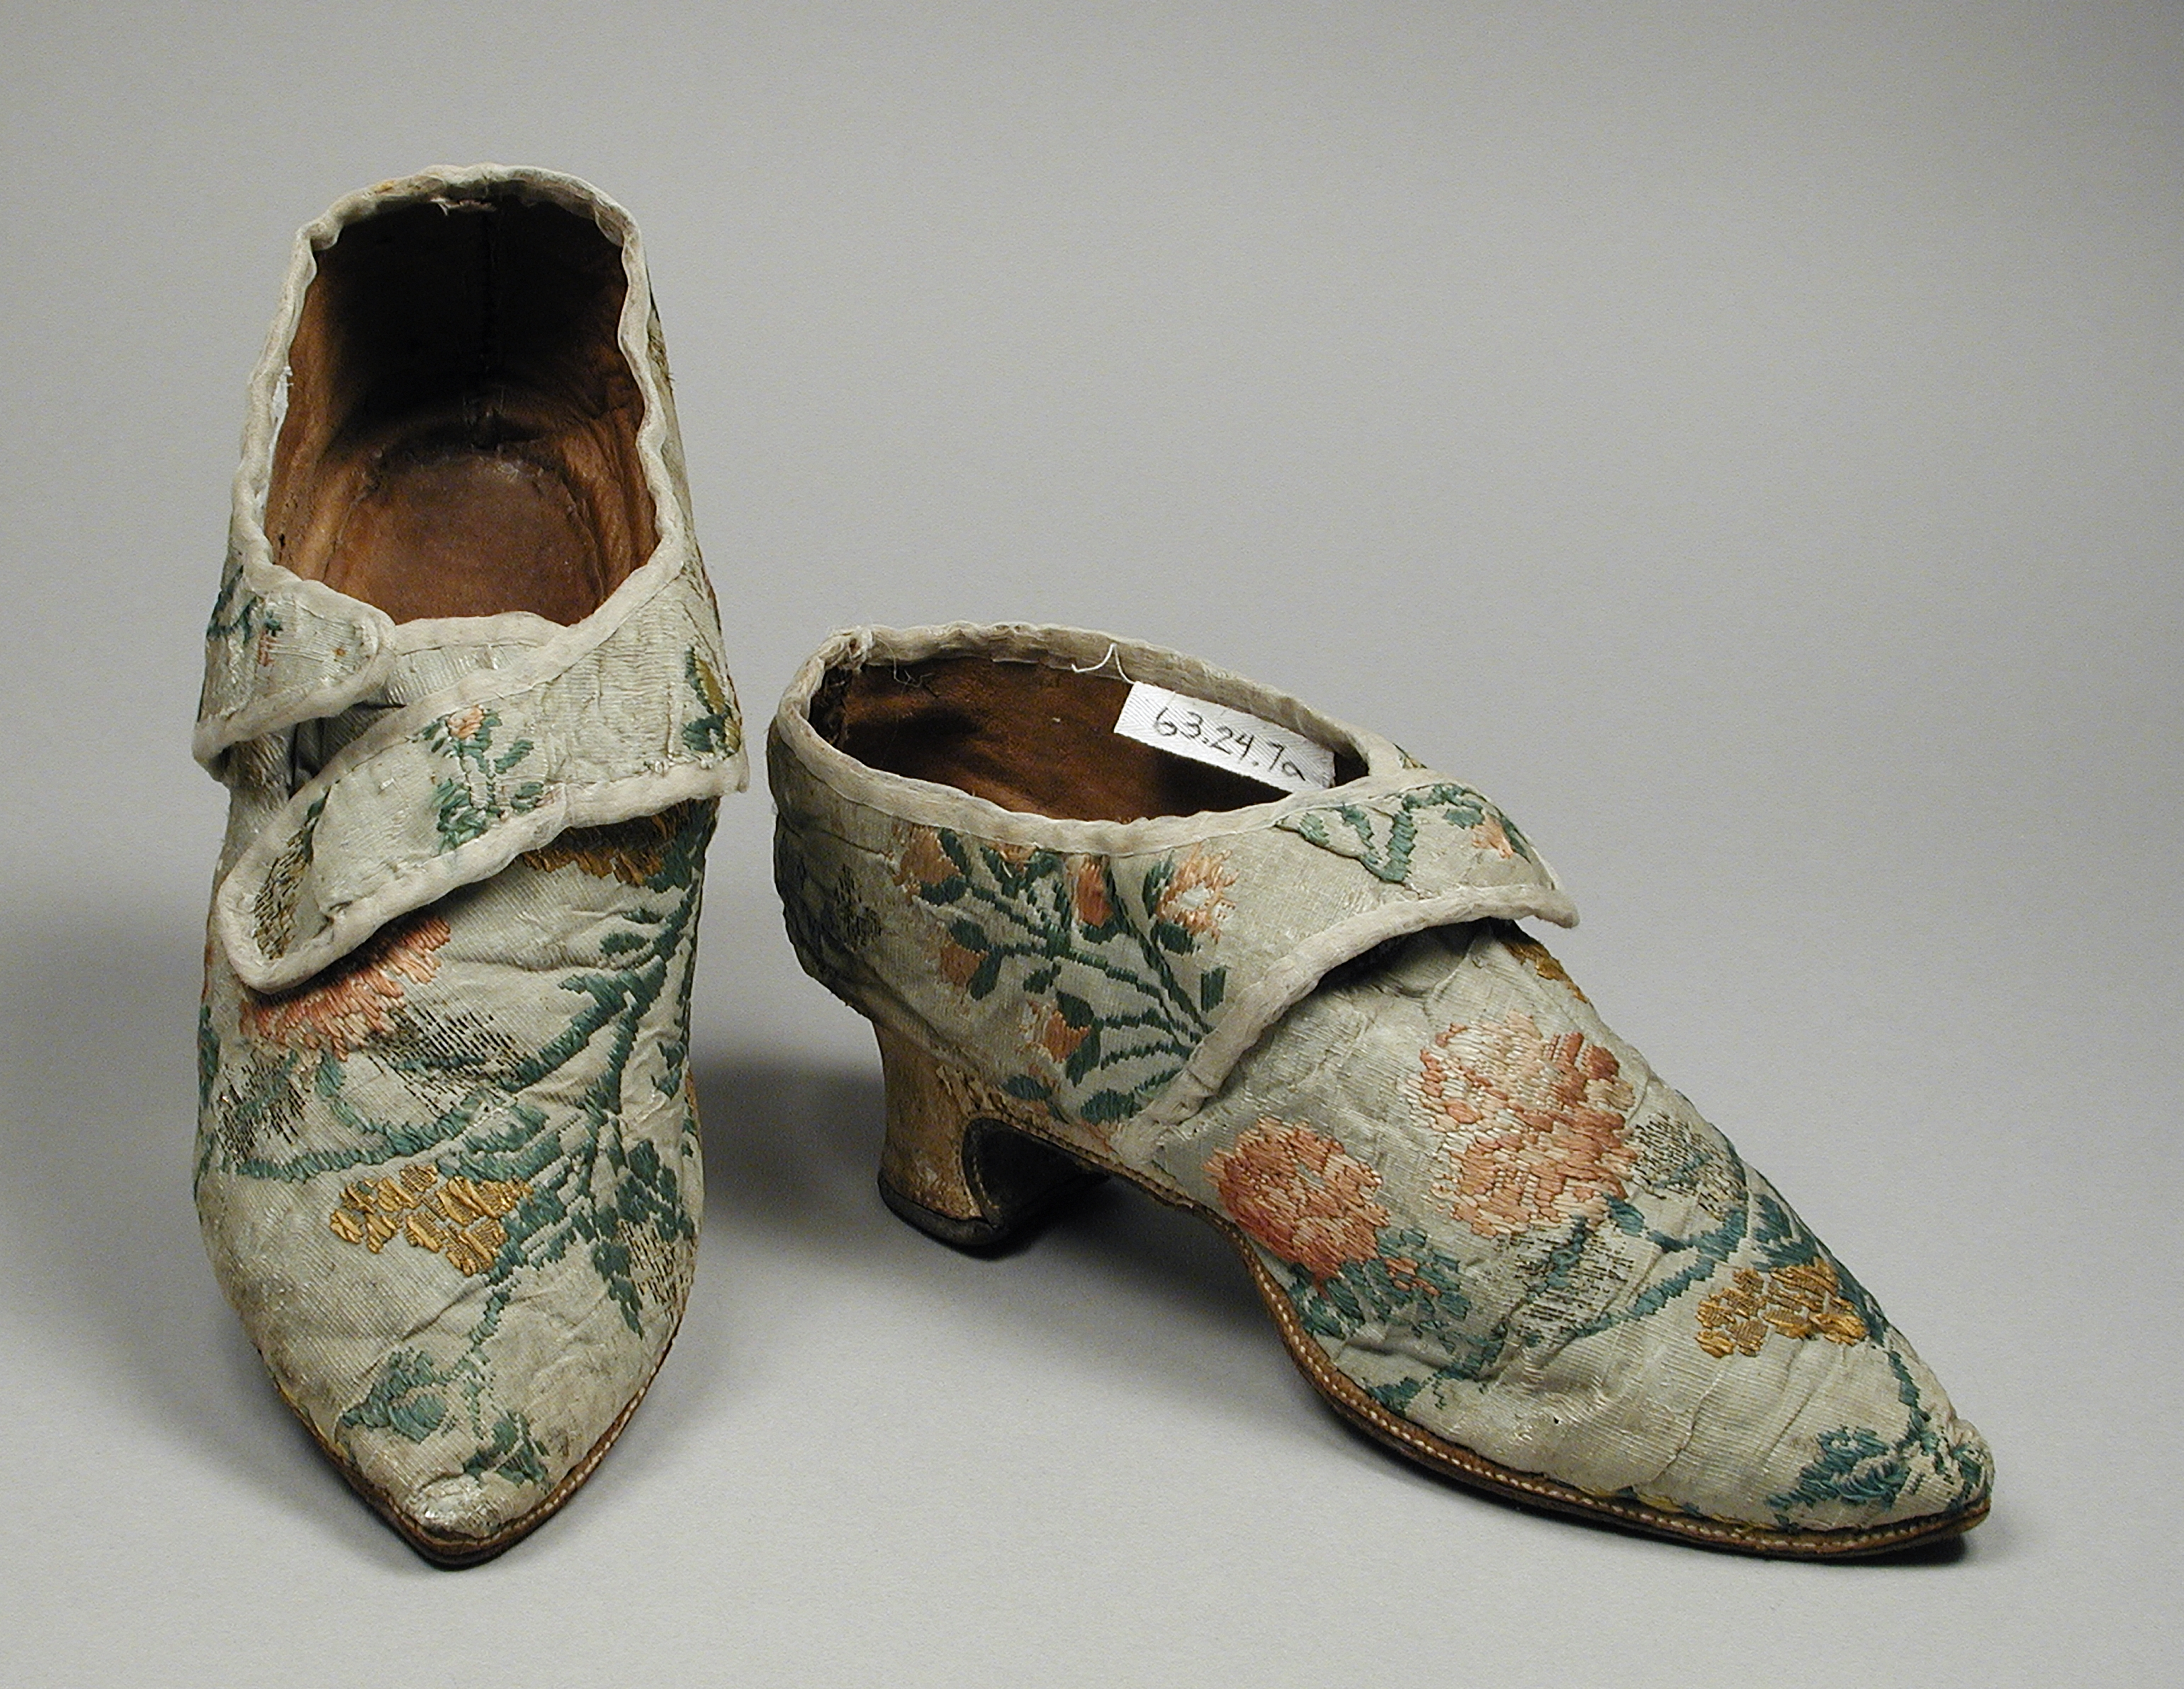 in western fashion w s silk brocade shoes straps for shoe buckles 1770s los angeles county museum of art 63 24 7a b